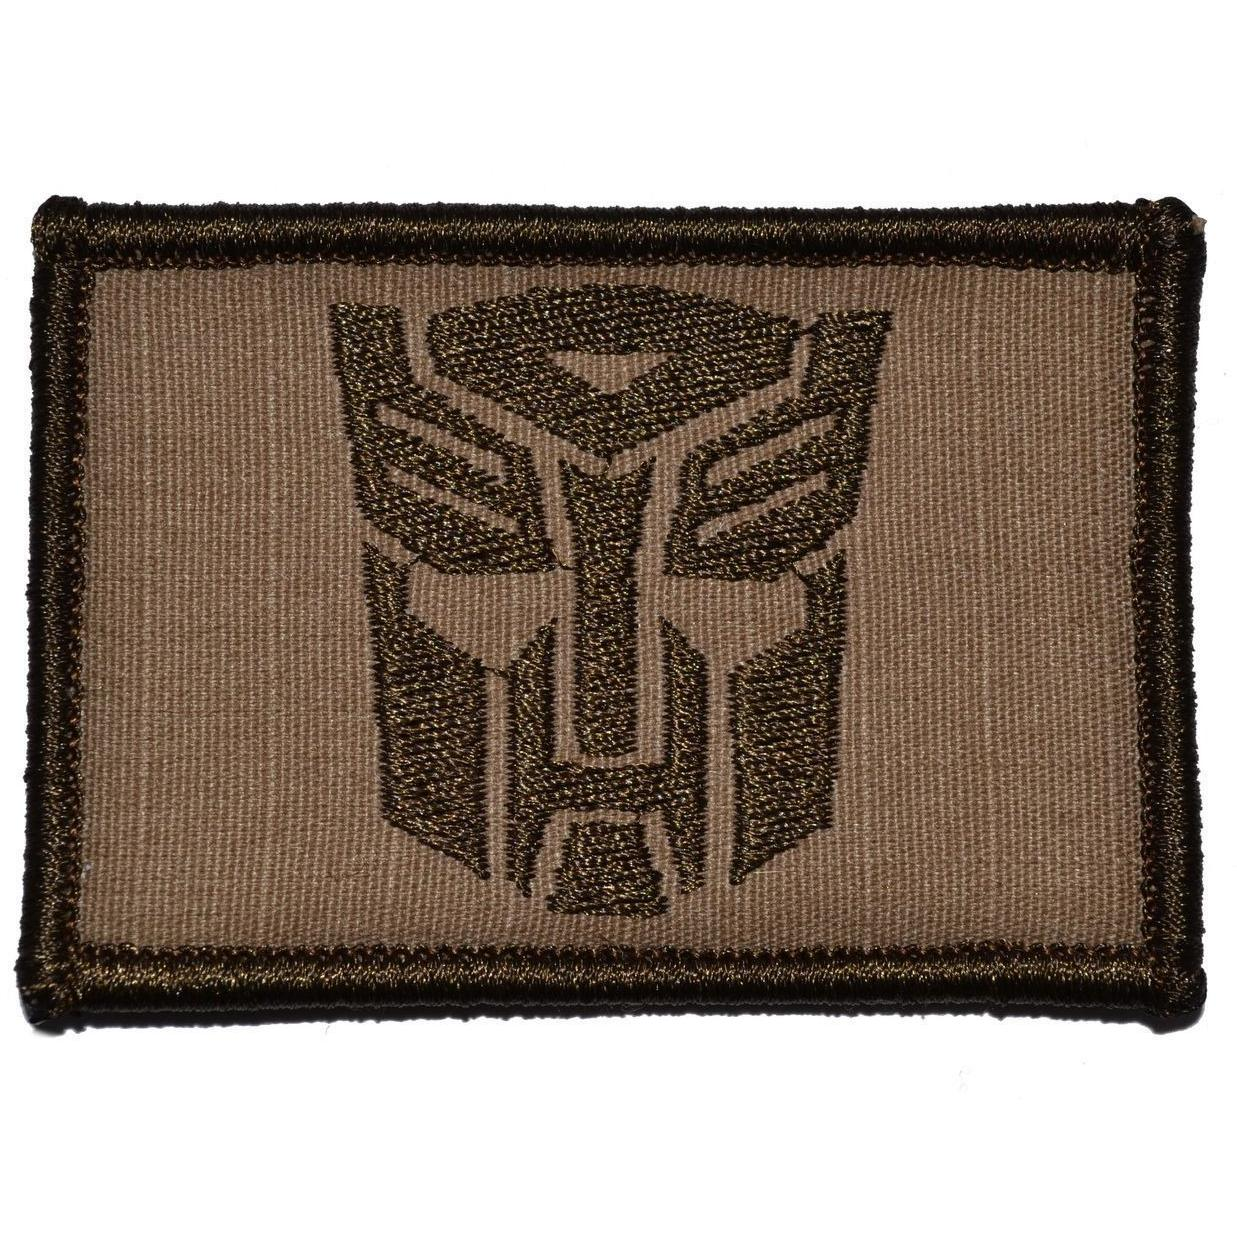 Autobot Transformers - 2x3 Patch